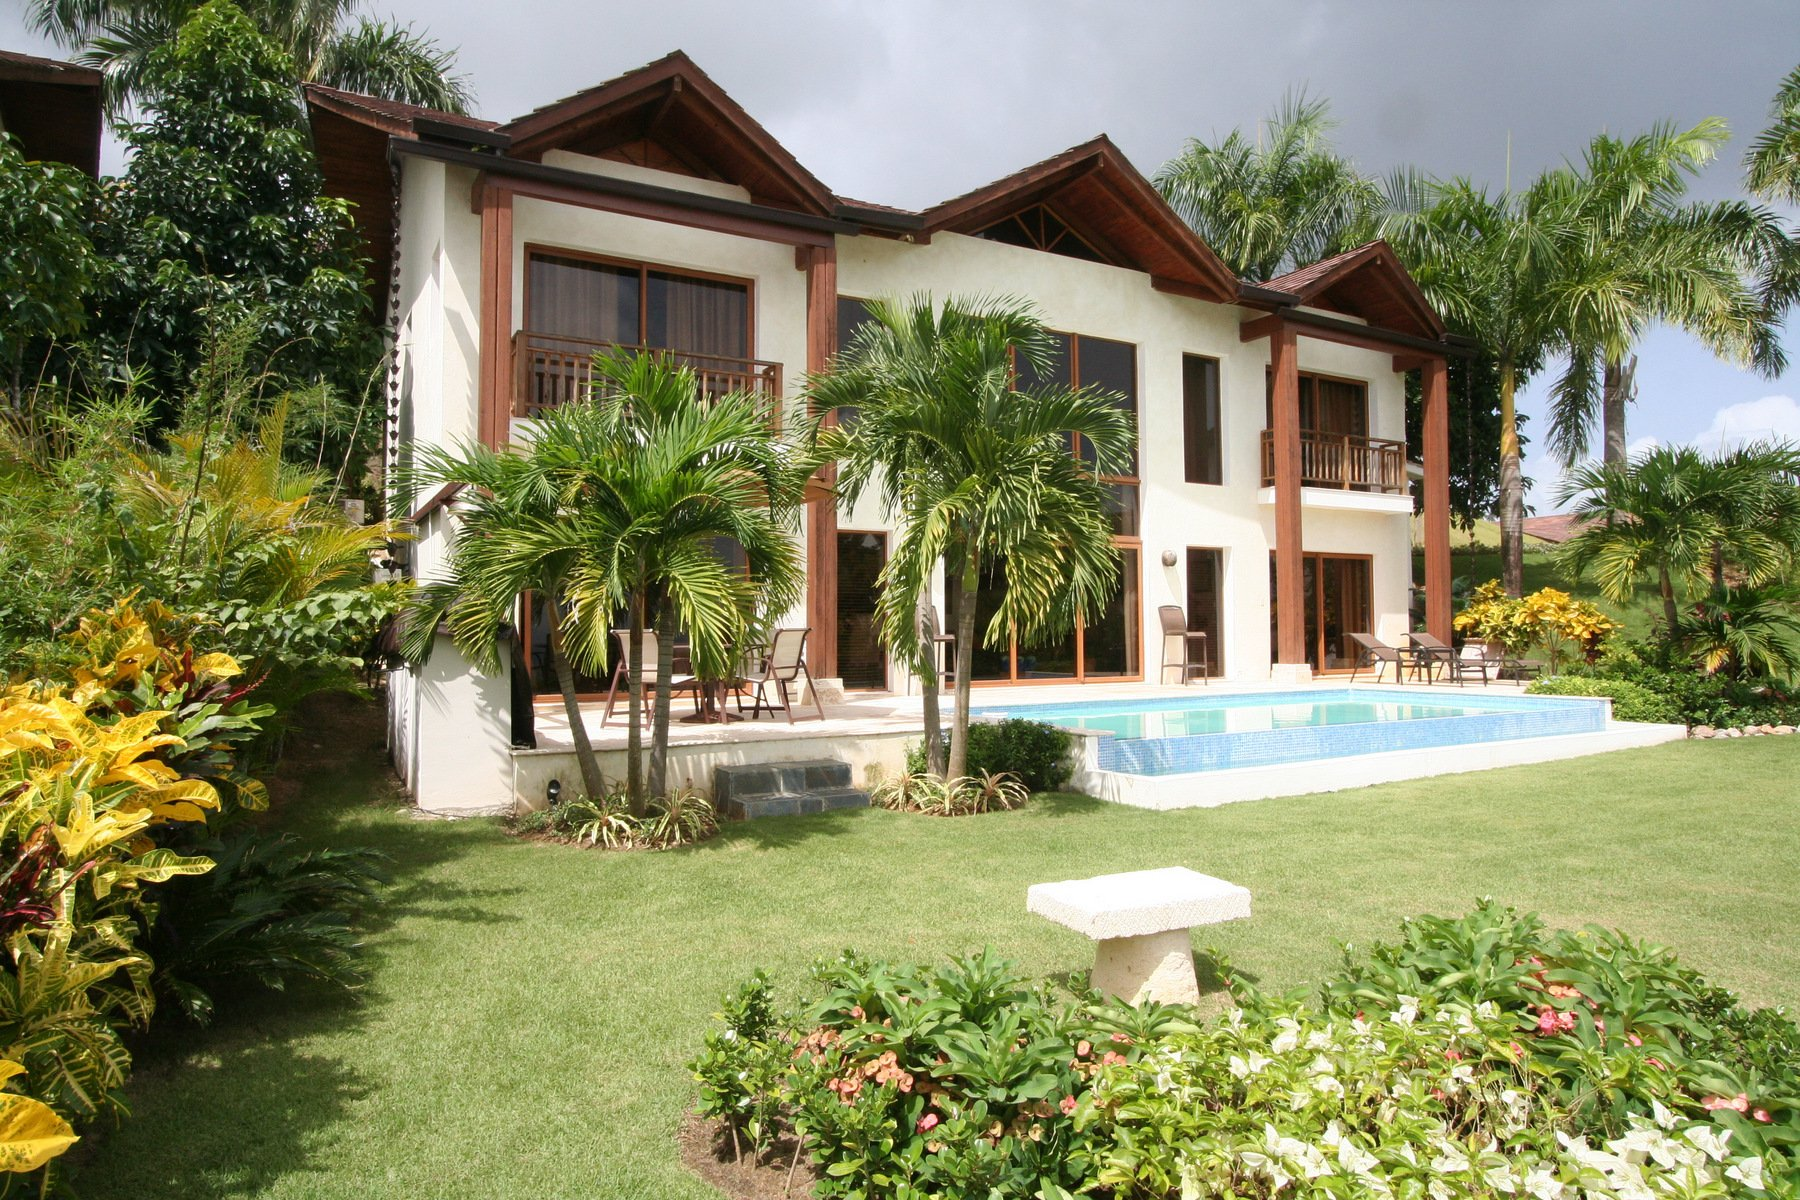 House in Samaná Province, Dominican Republic 1